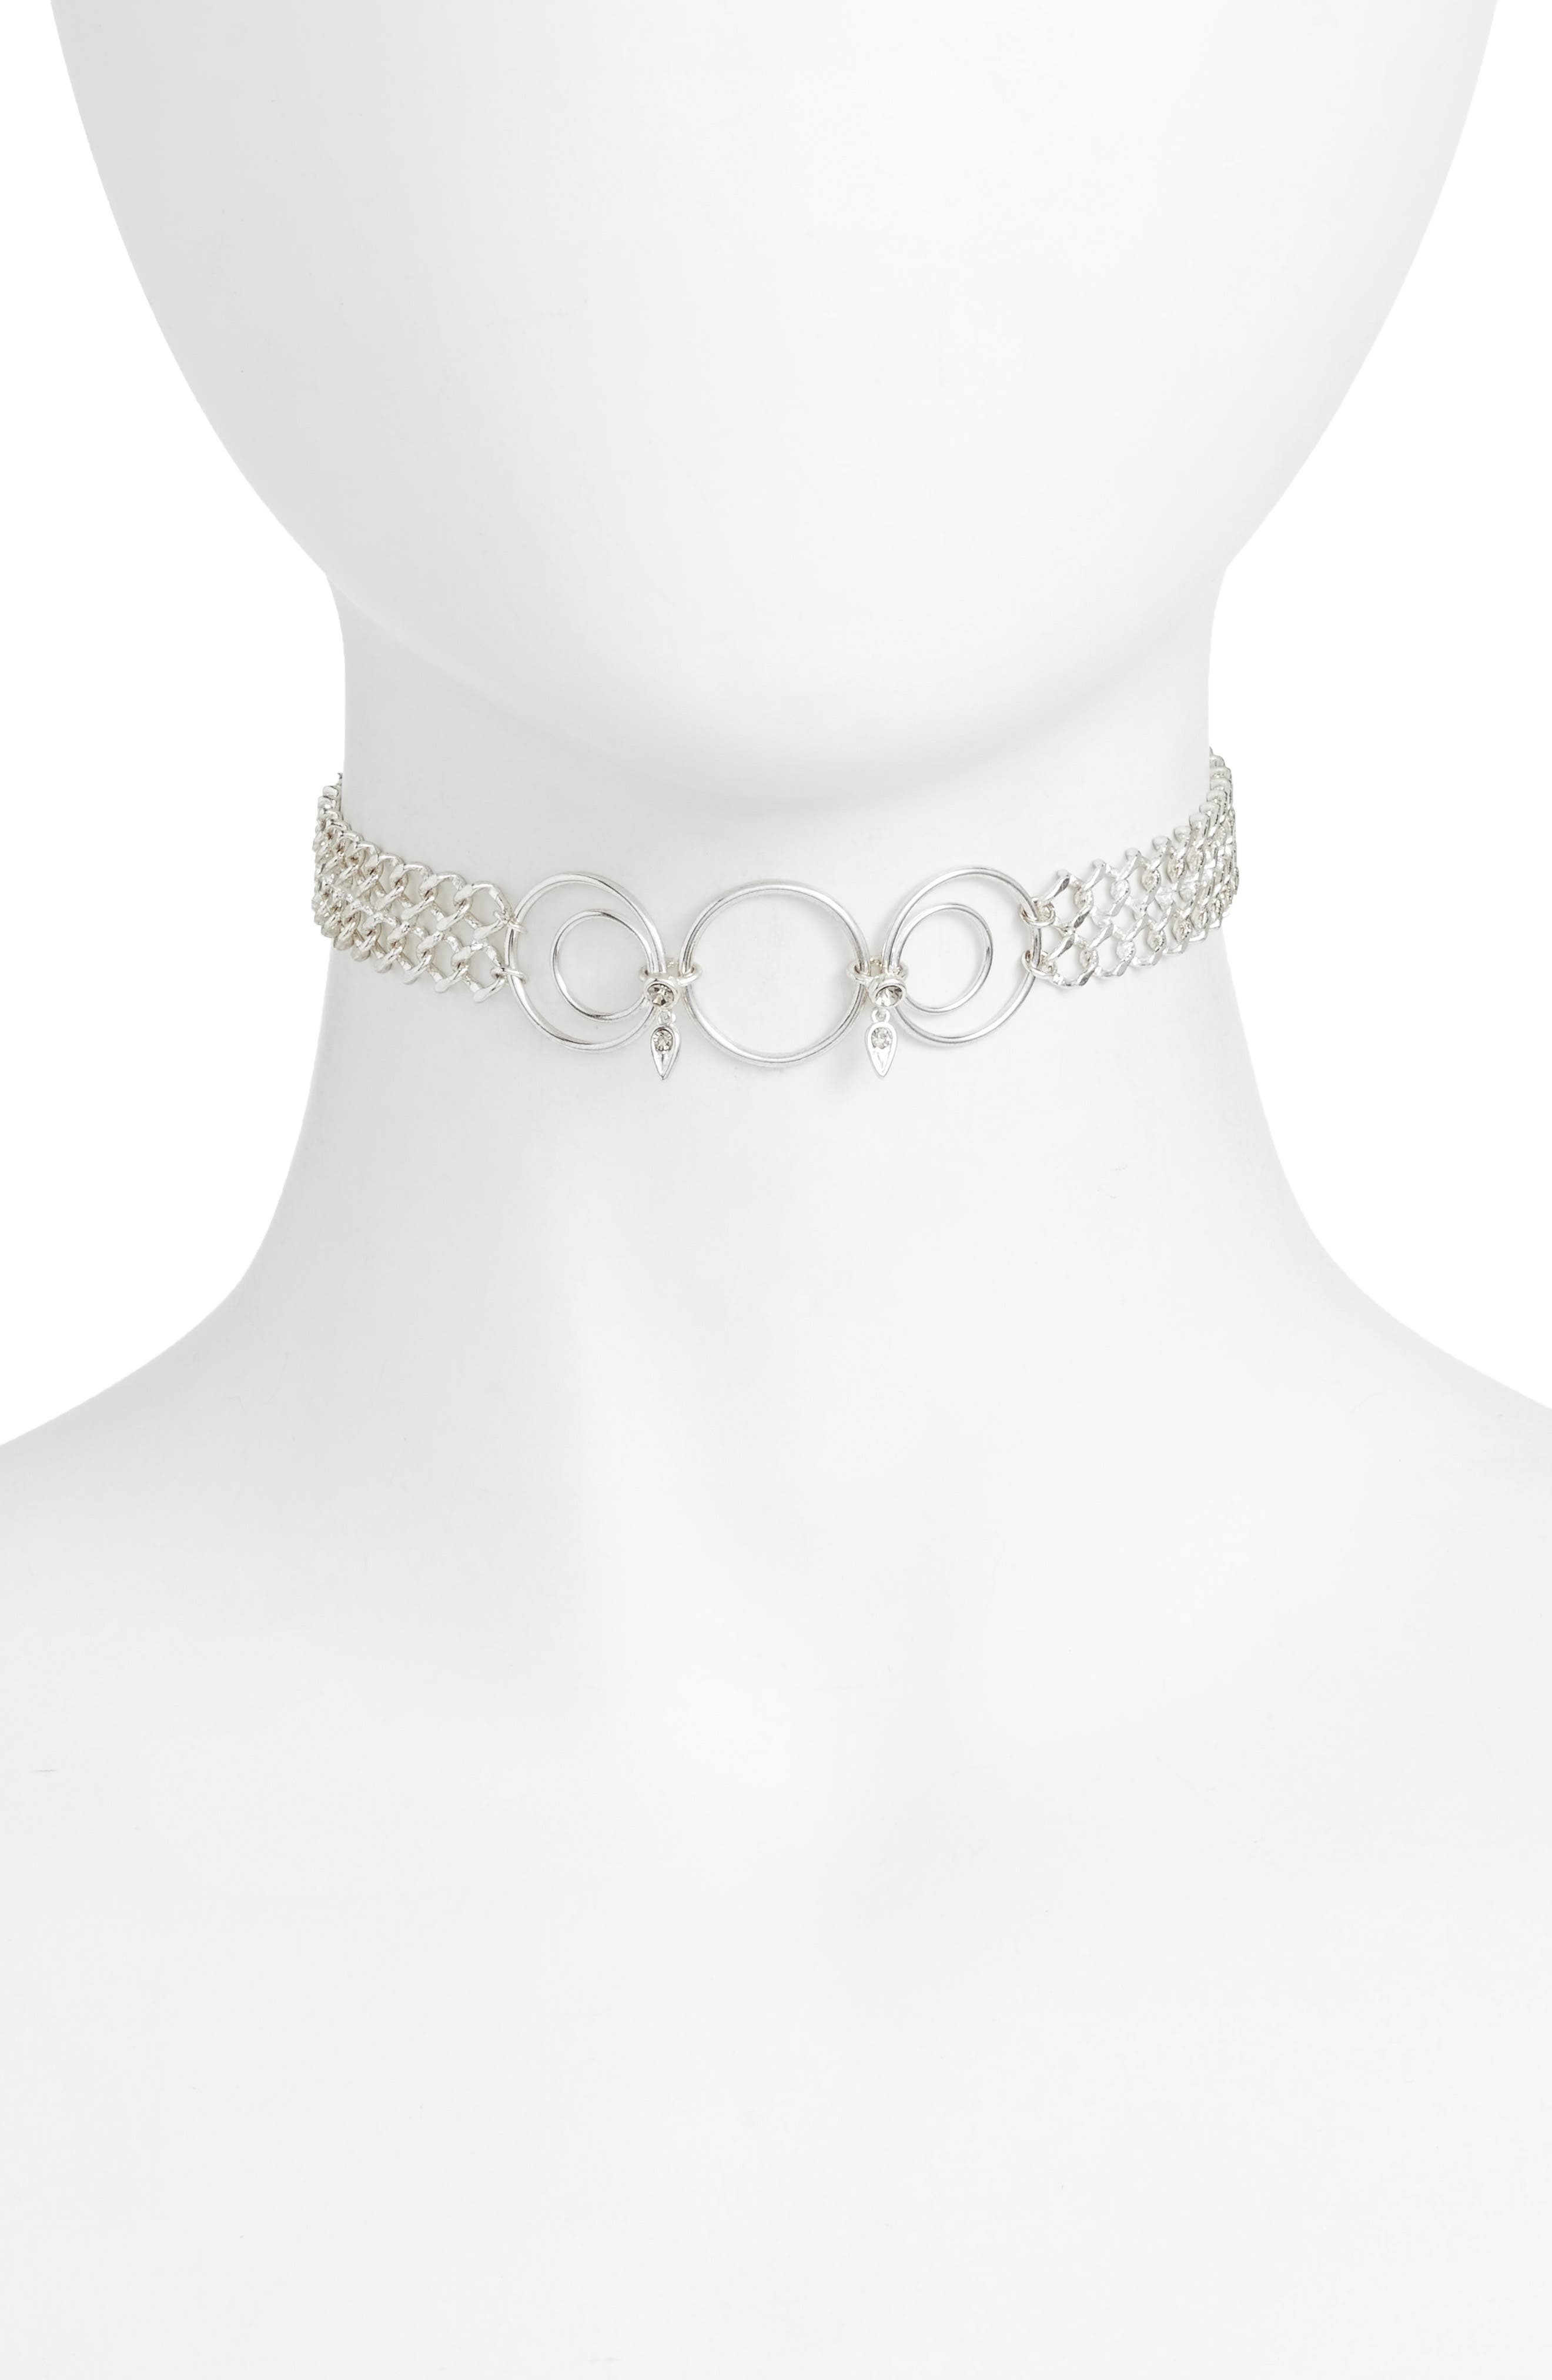 Eclipse Choker Necklace,                             Main thumbnail 1, color,                             Silver